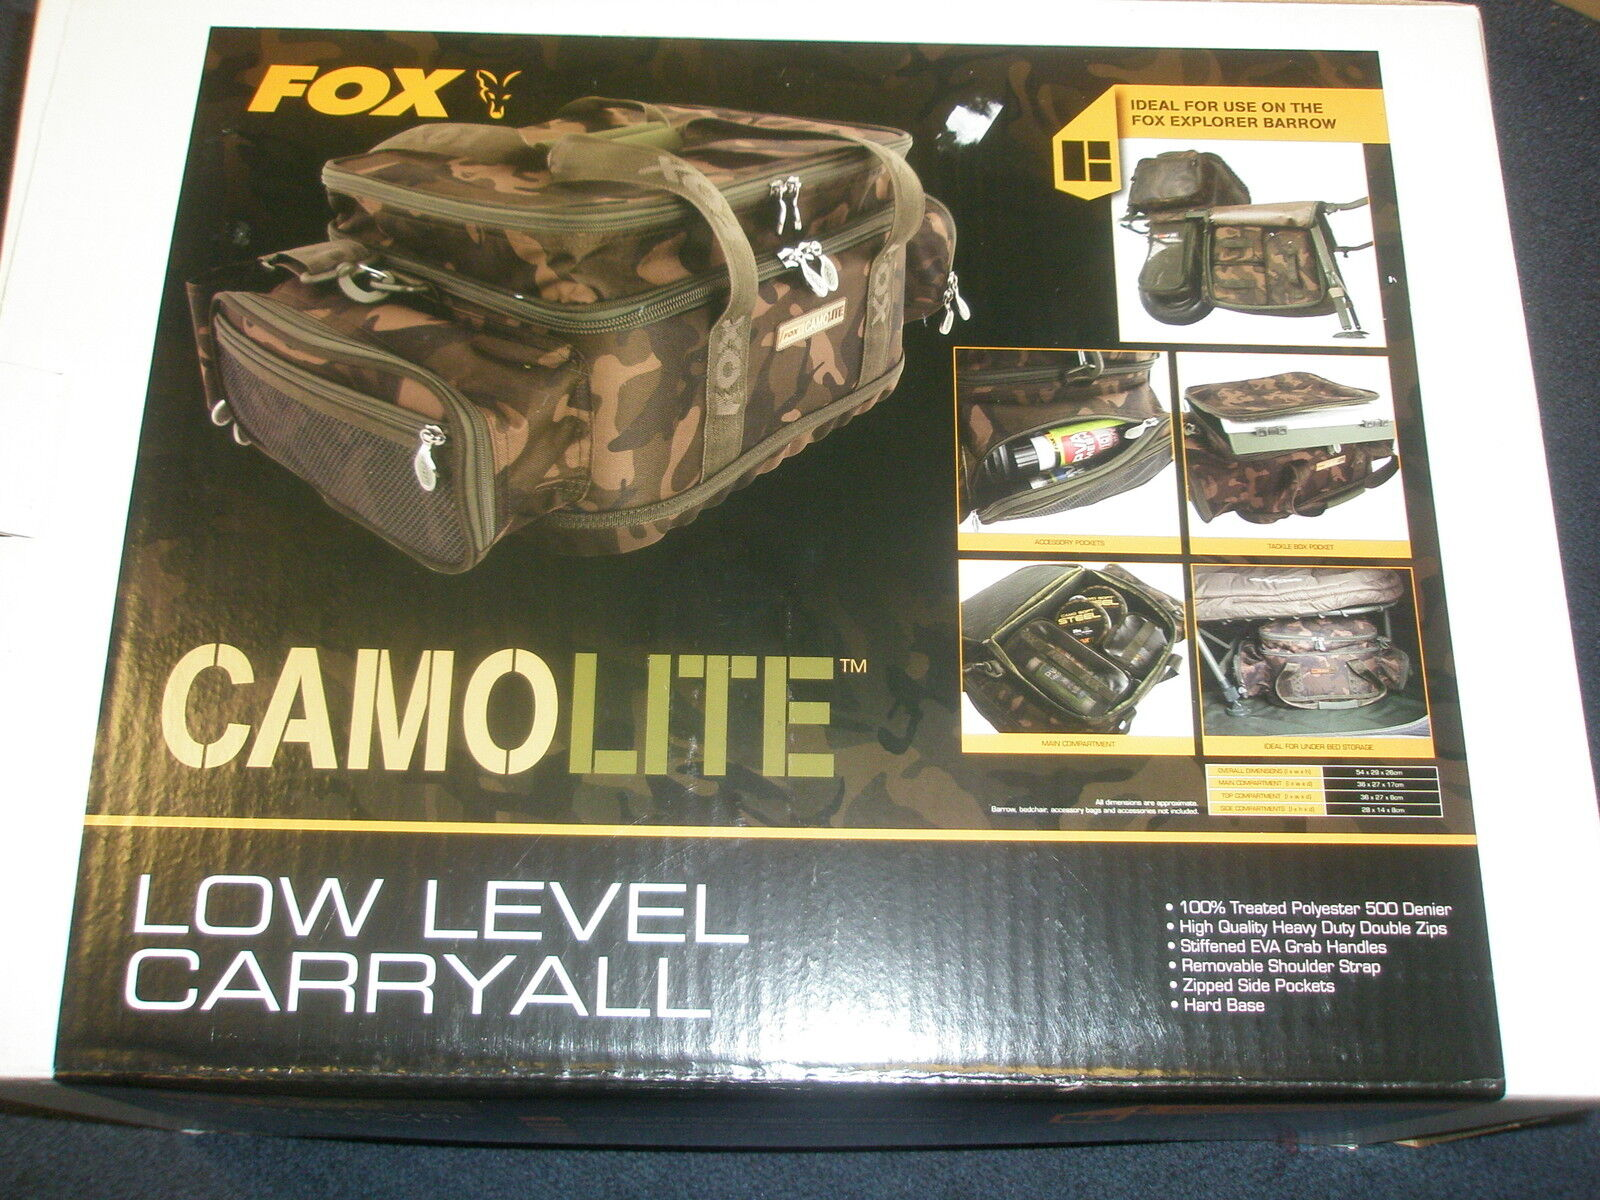 Fox Camolite bajo Nivel Carry All Pesca de Carpa Carpa Carpa Anzuelo 7e8461